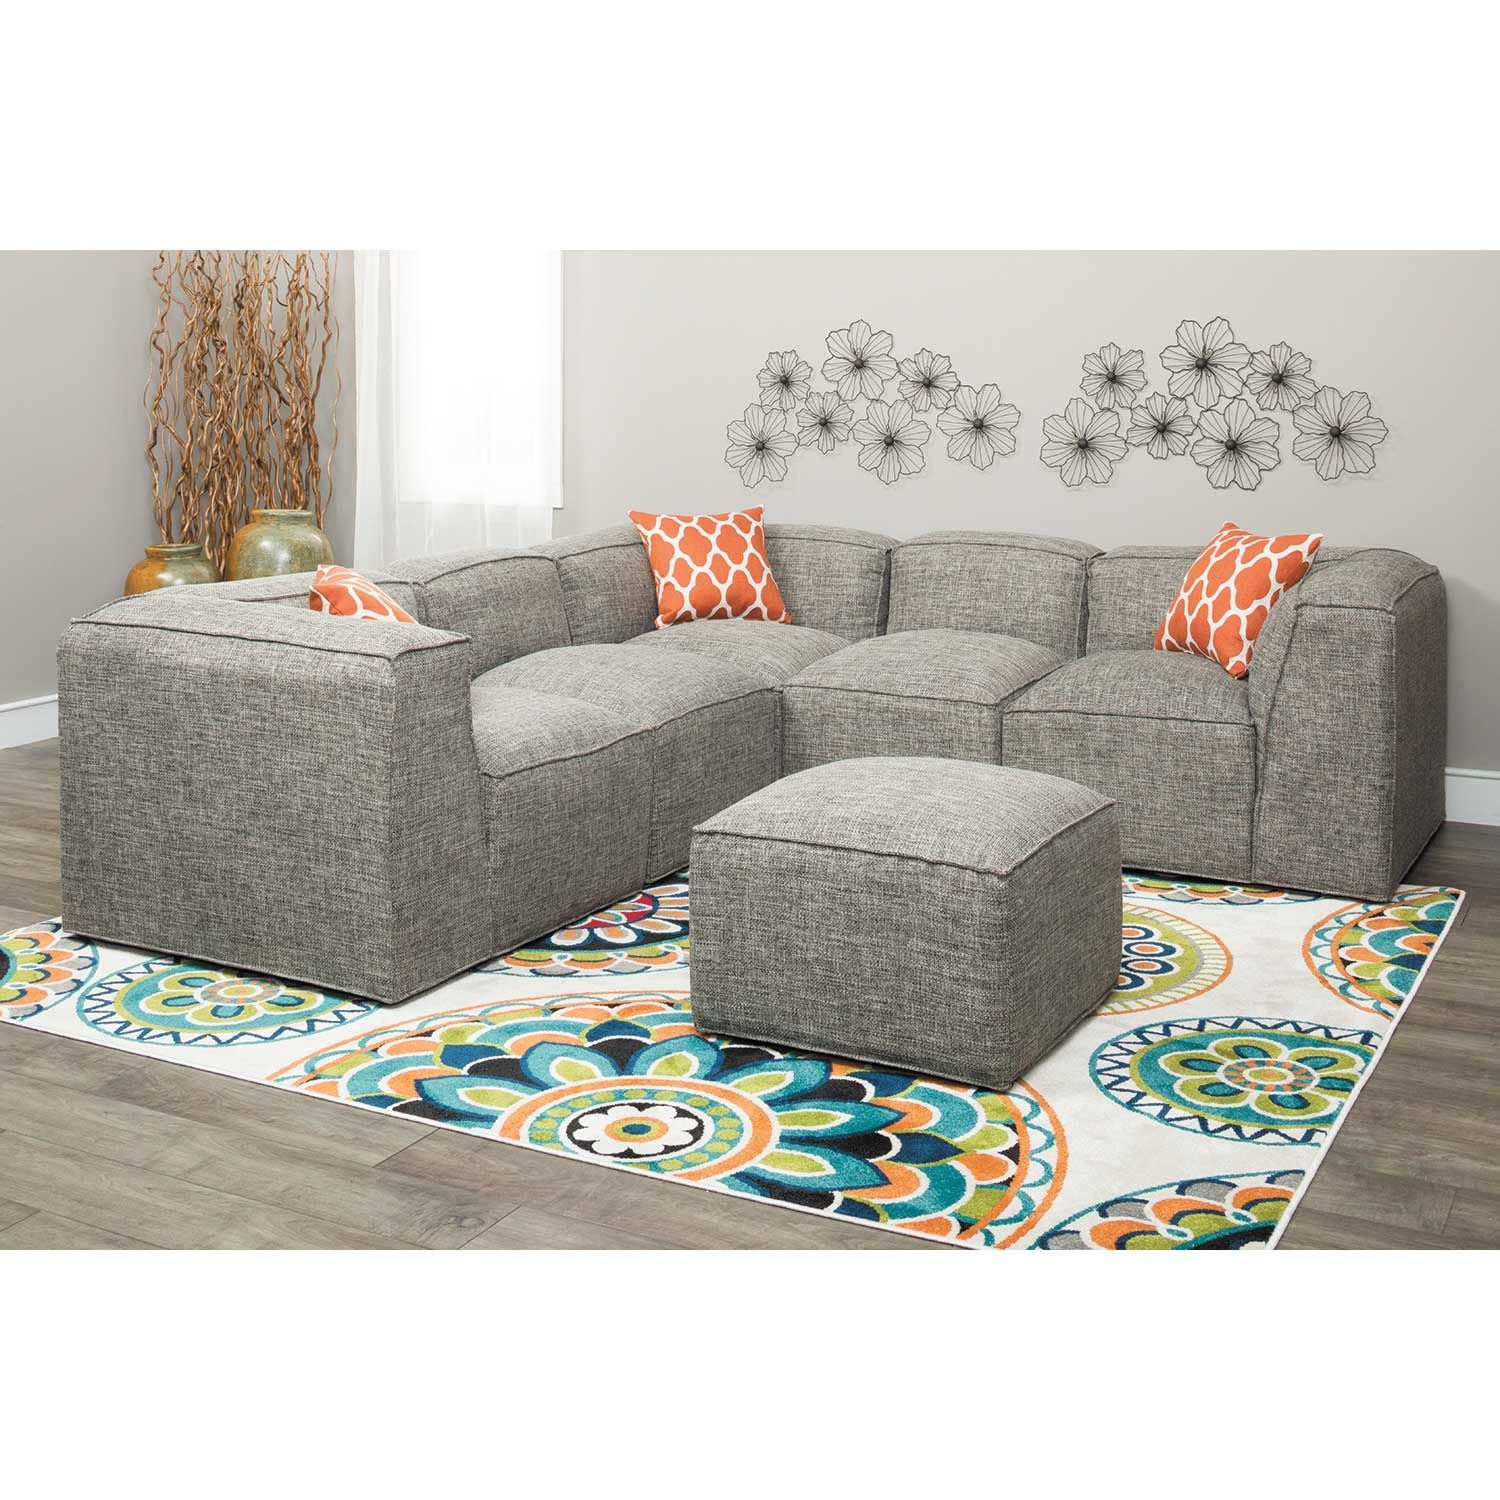 Picture of Freestyle 5 Piece Modular Sectional